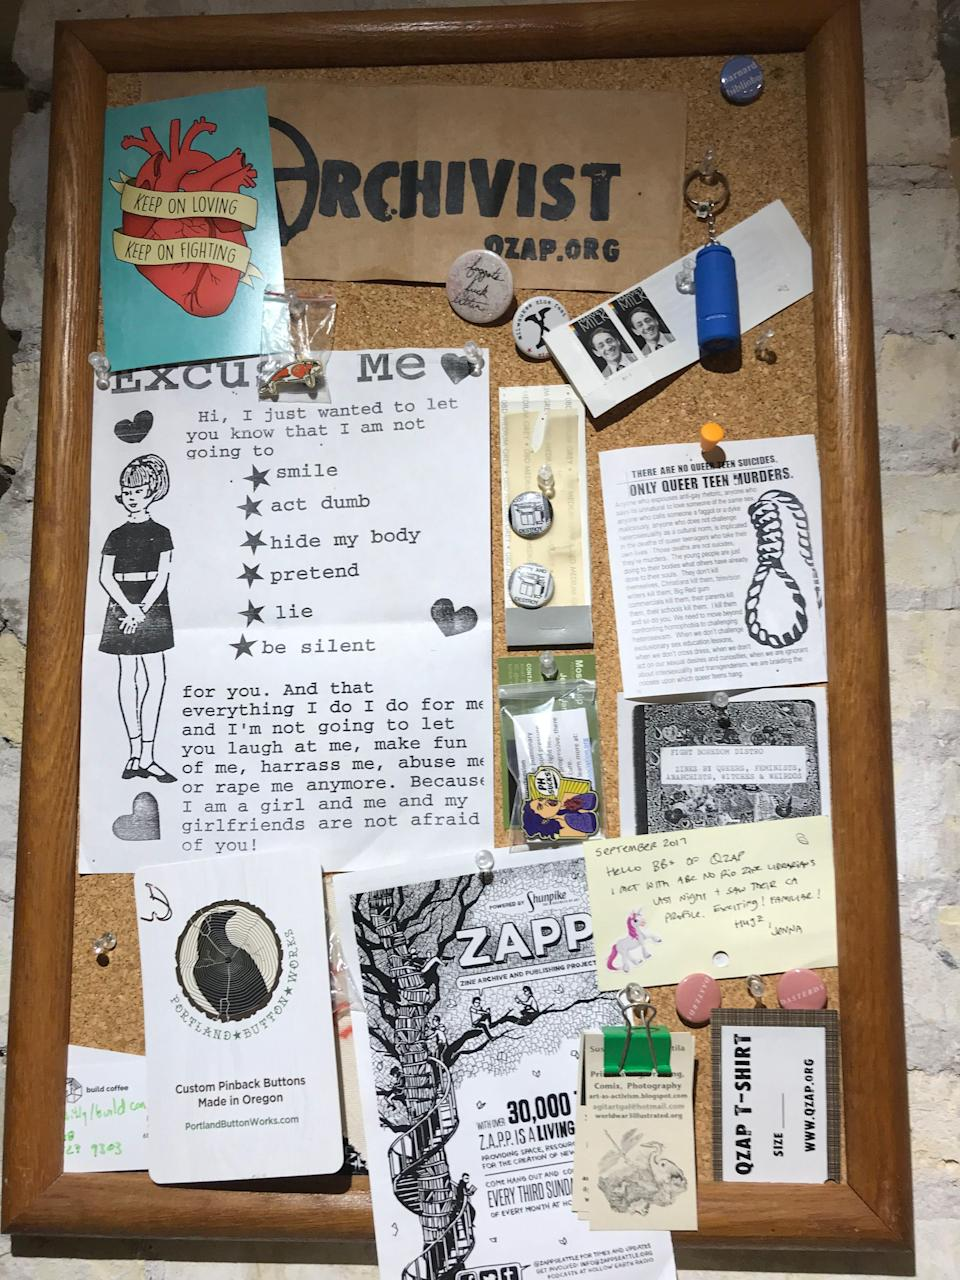 Mementos and zine clippings hang on a board at the Queer Zine Archive Project. Zines have deep roots in queer communities, said Milo Miller, cofounder of QZAP.